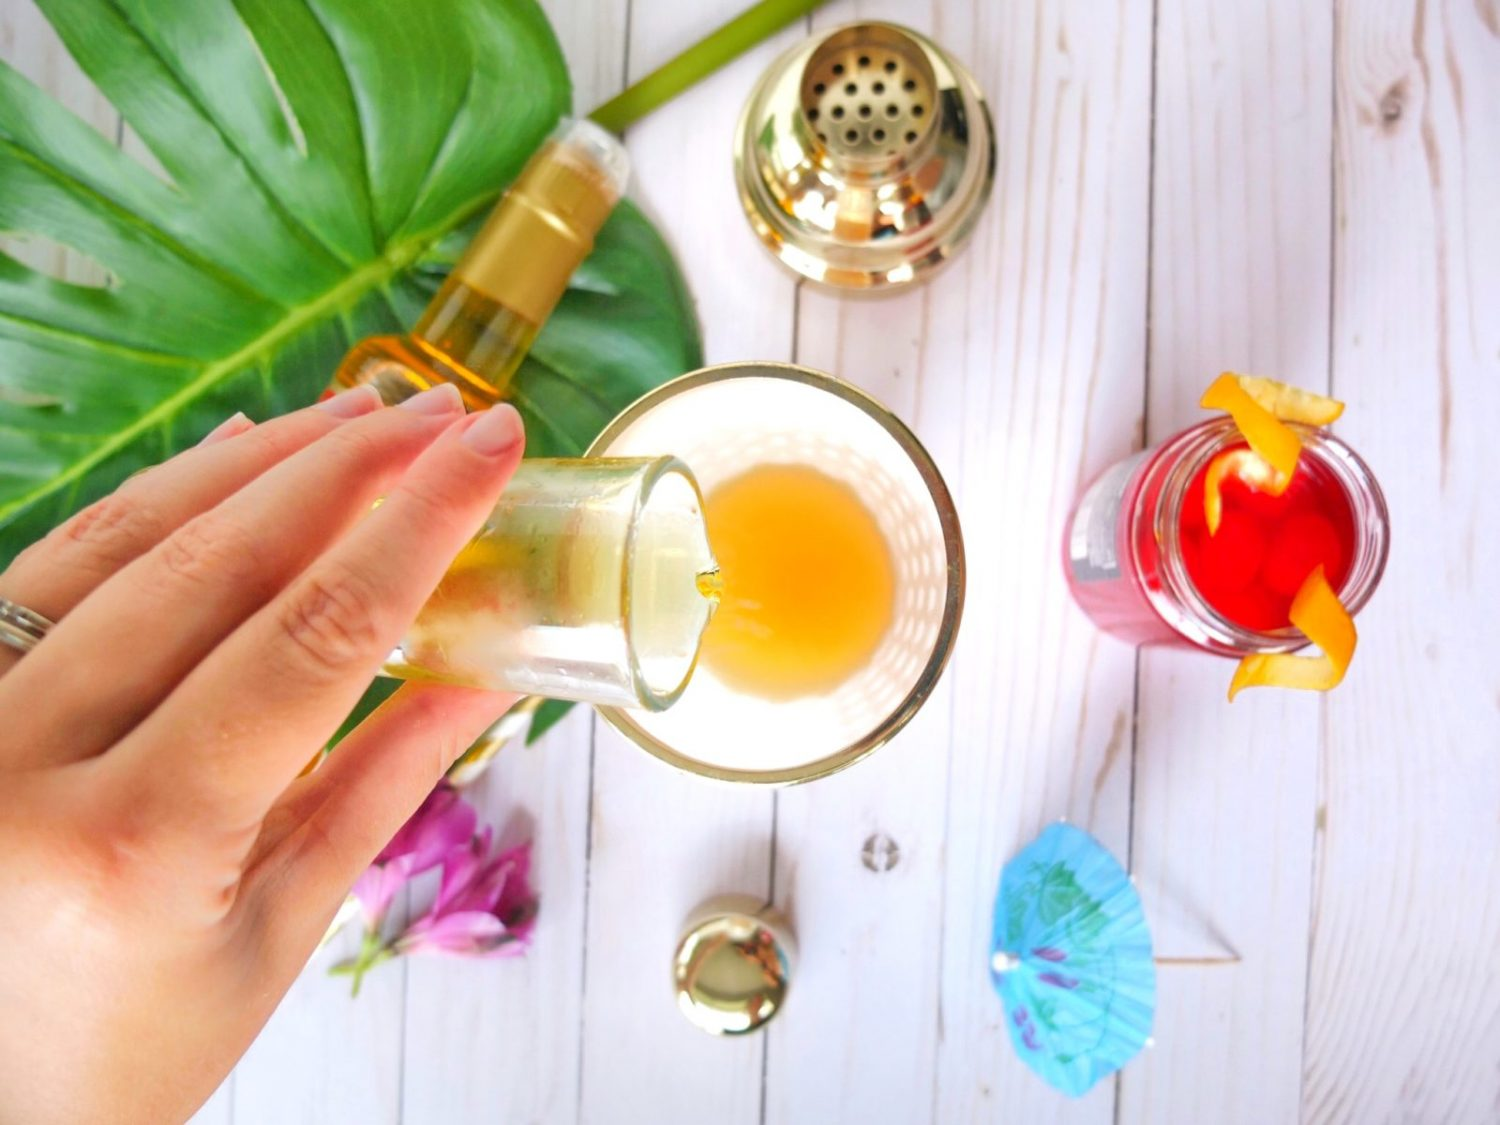 Easy summer Torani Syrup cocktail recipe for a Passion on the Beach. A Passionfruit version of a Sex on The Beach cocktail using Torani Passion Fruit Syrup. #ad #MyToraniSummer // www.elletalk.com